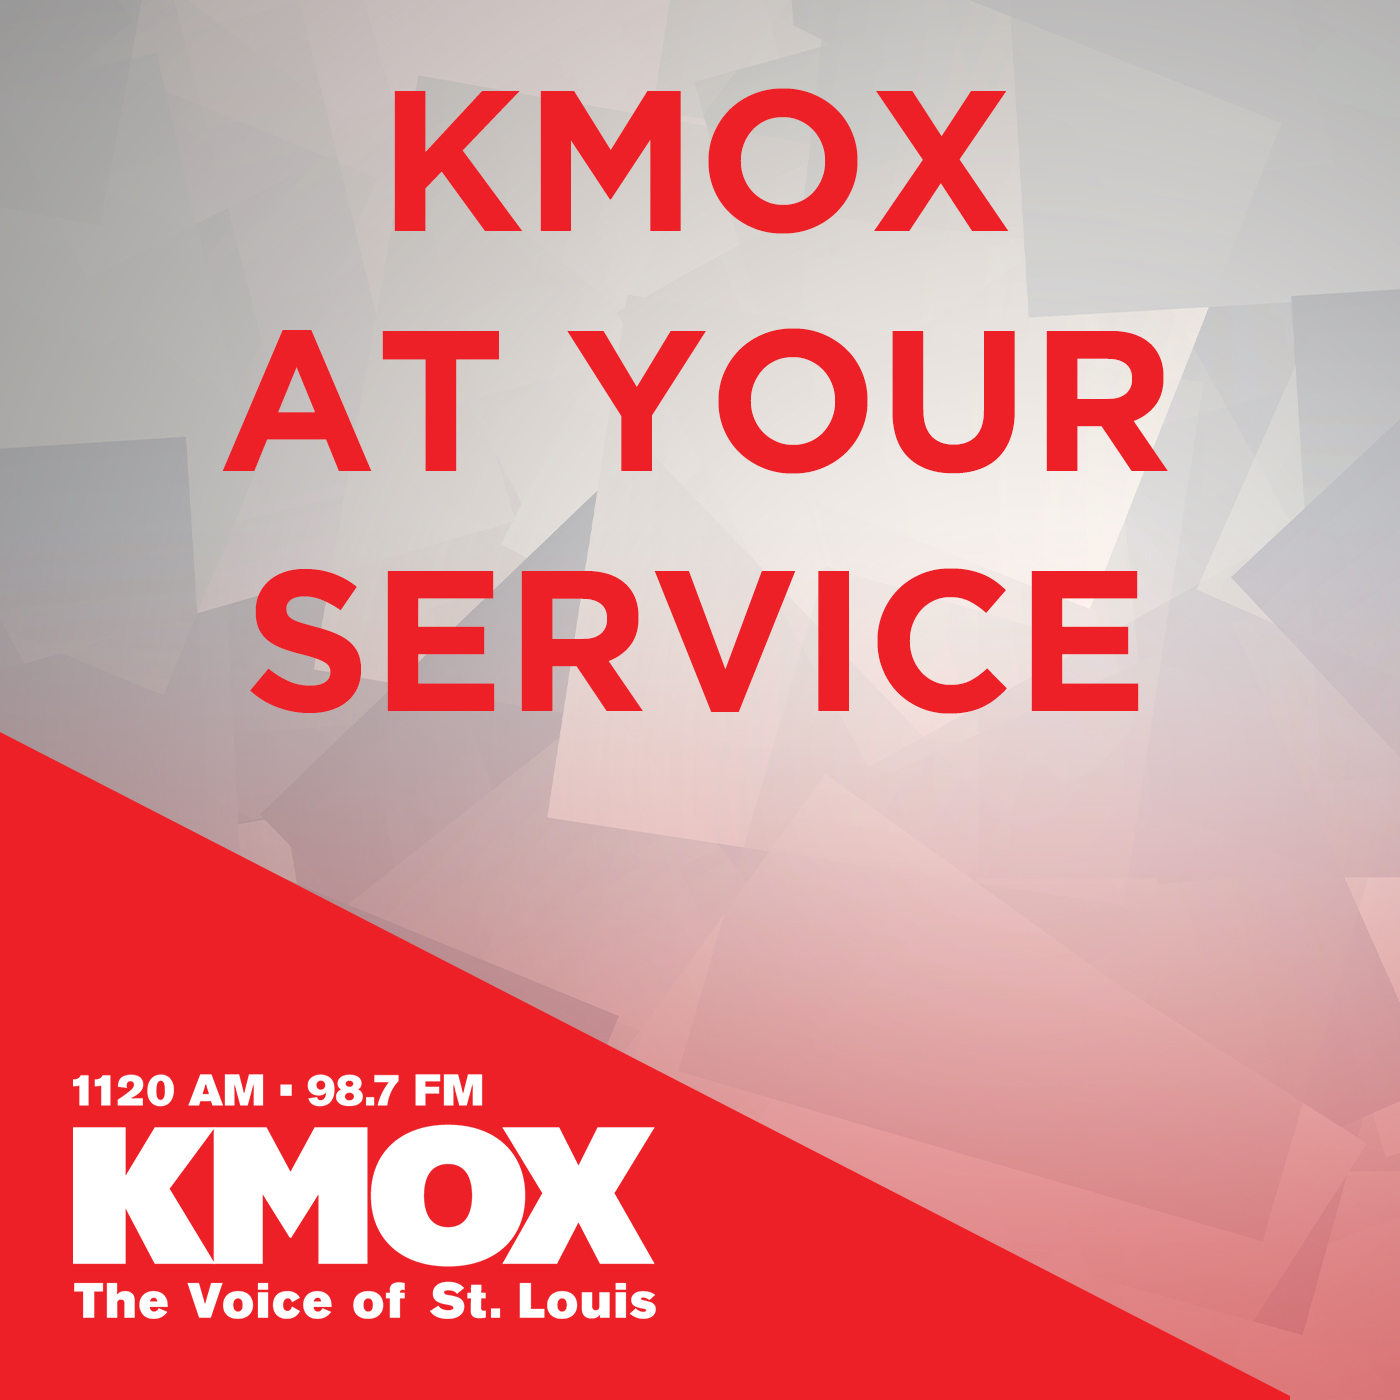 KMOX At Your Service